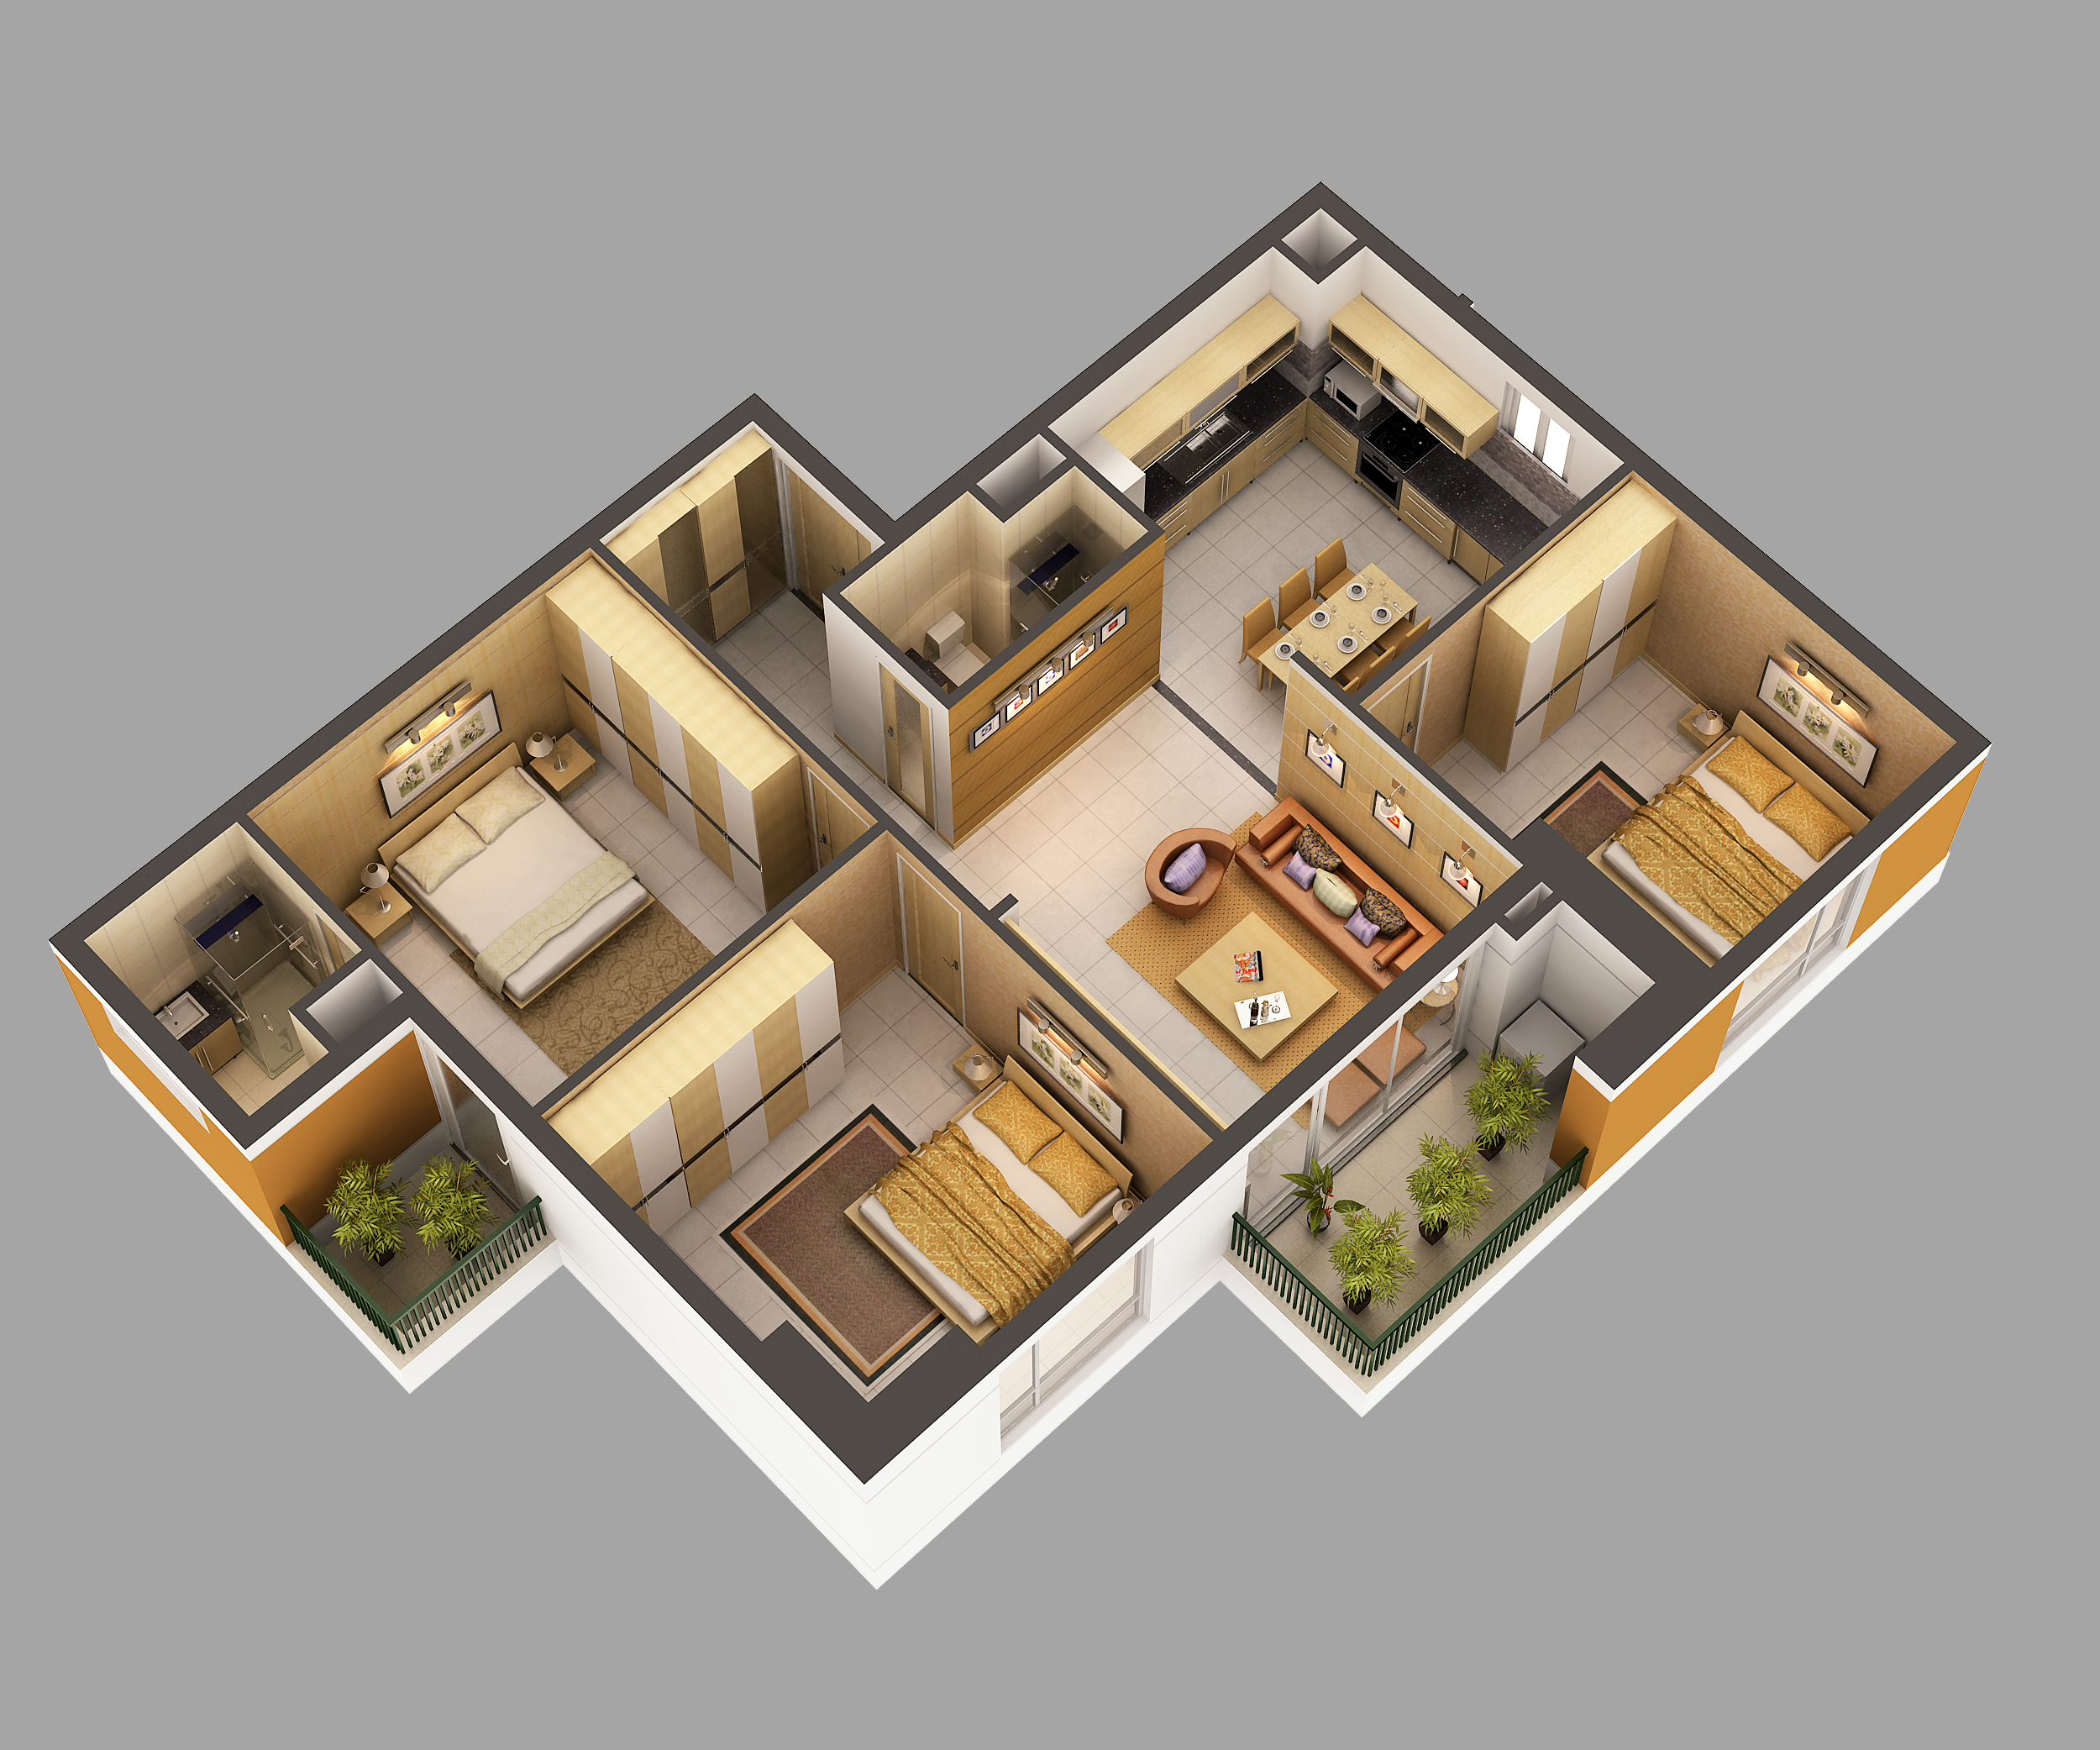 3d model home interior fully furnished 3d model max for 3d view of house interior design